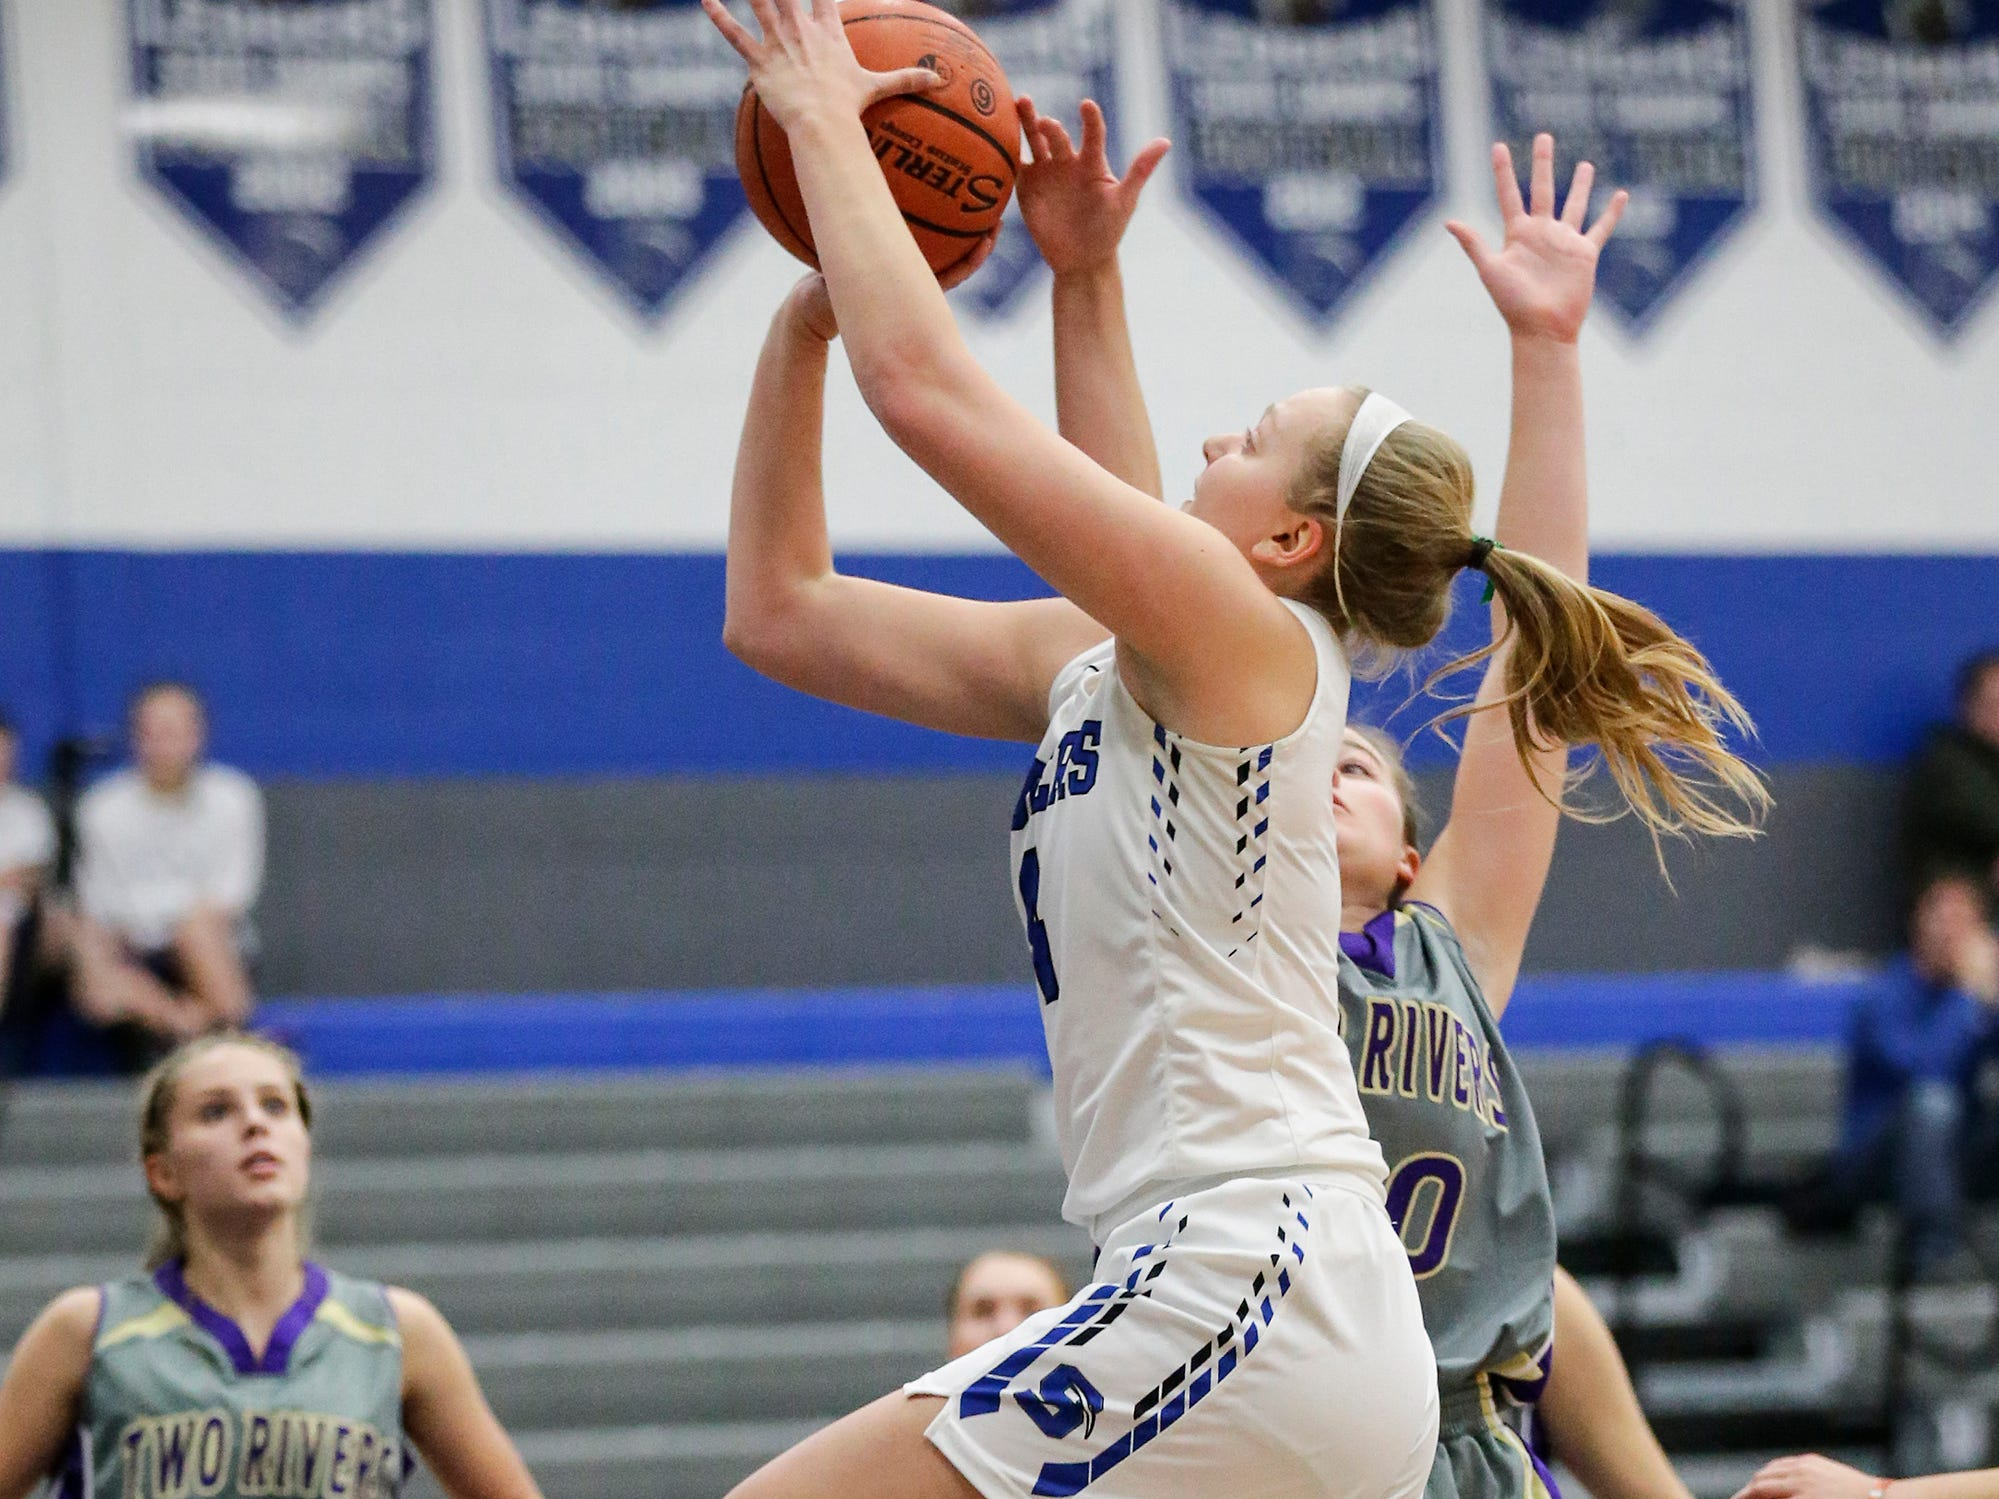 St. Mary's Springs girls basketball's Brianna Freund goes up for a basket against Two Rivers High School during their game Friday, November 16, 2018 in Fond du Lac. Doug Raflik/USA TODAY NETWORK-Wisconsin